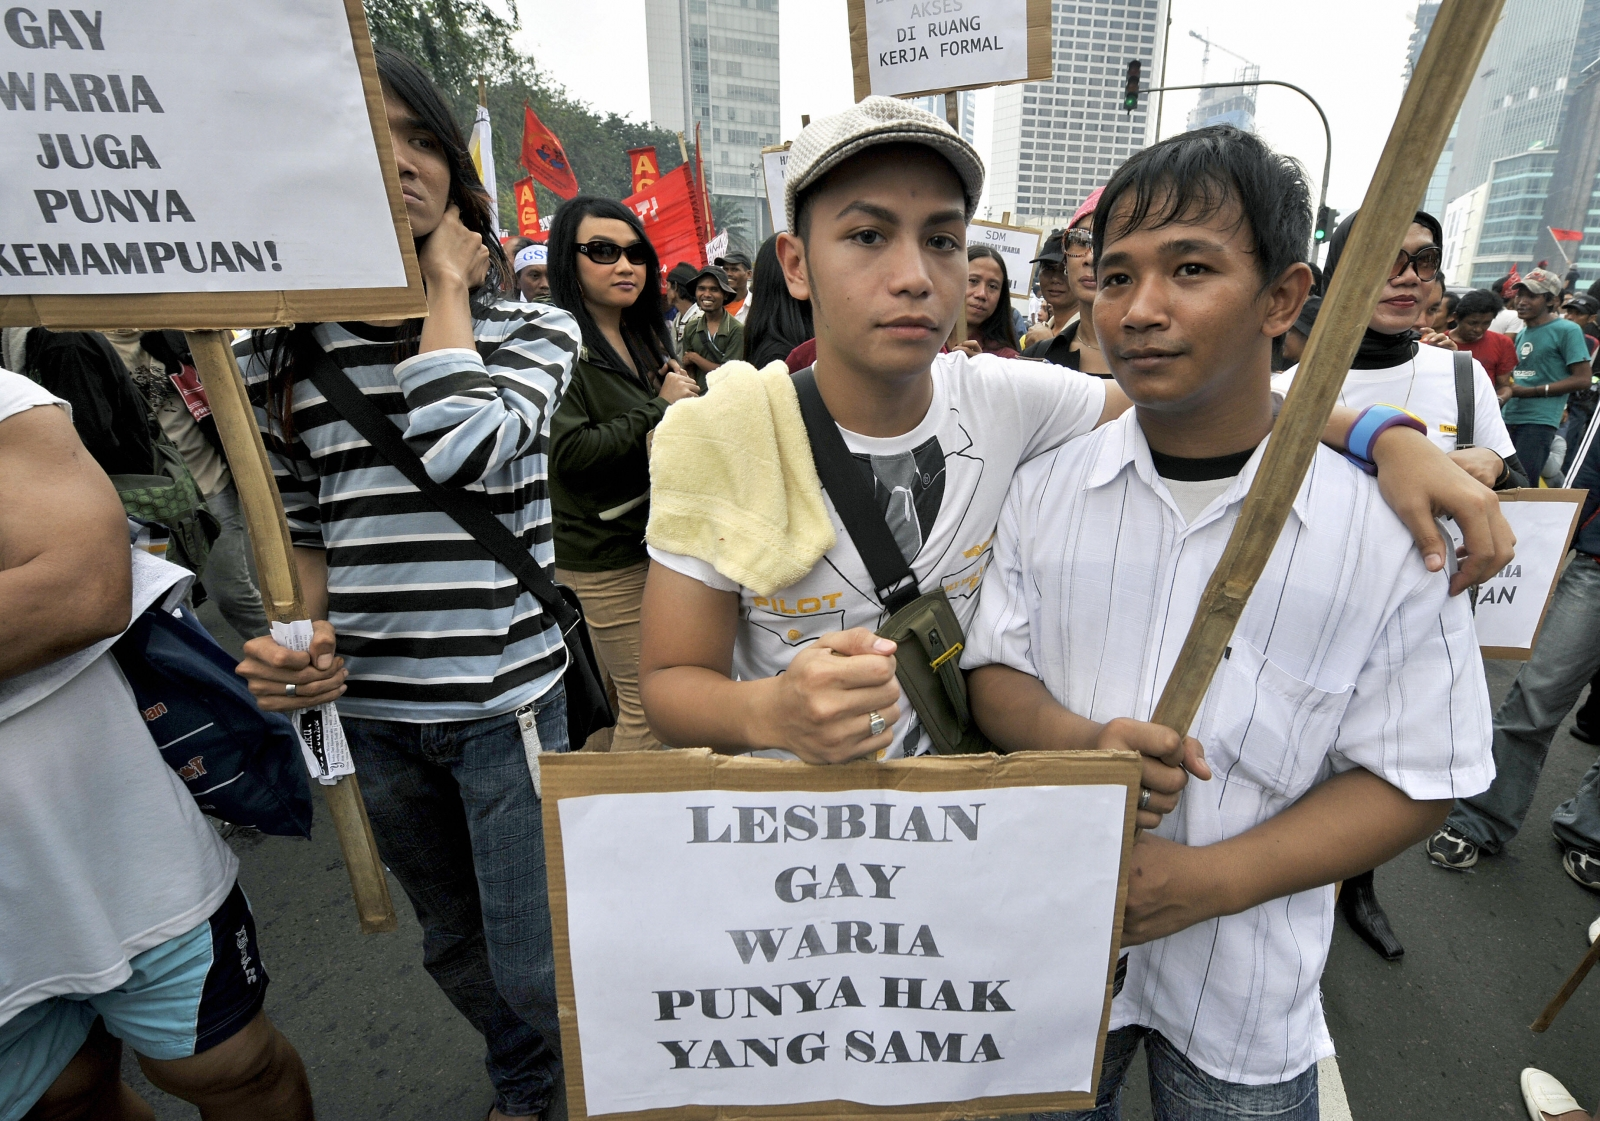 from Melvin gay men in indonesia